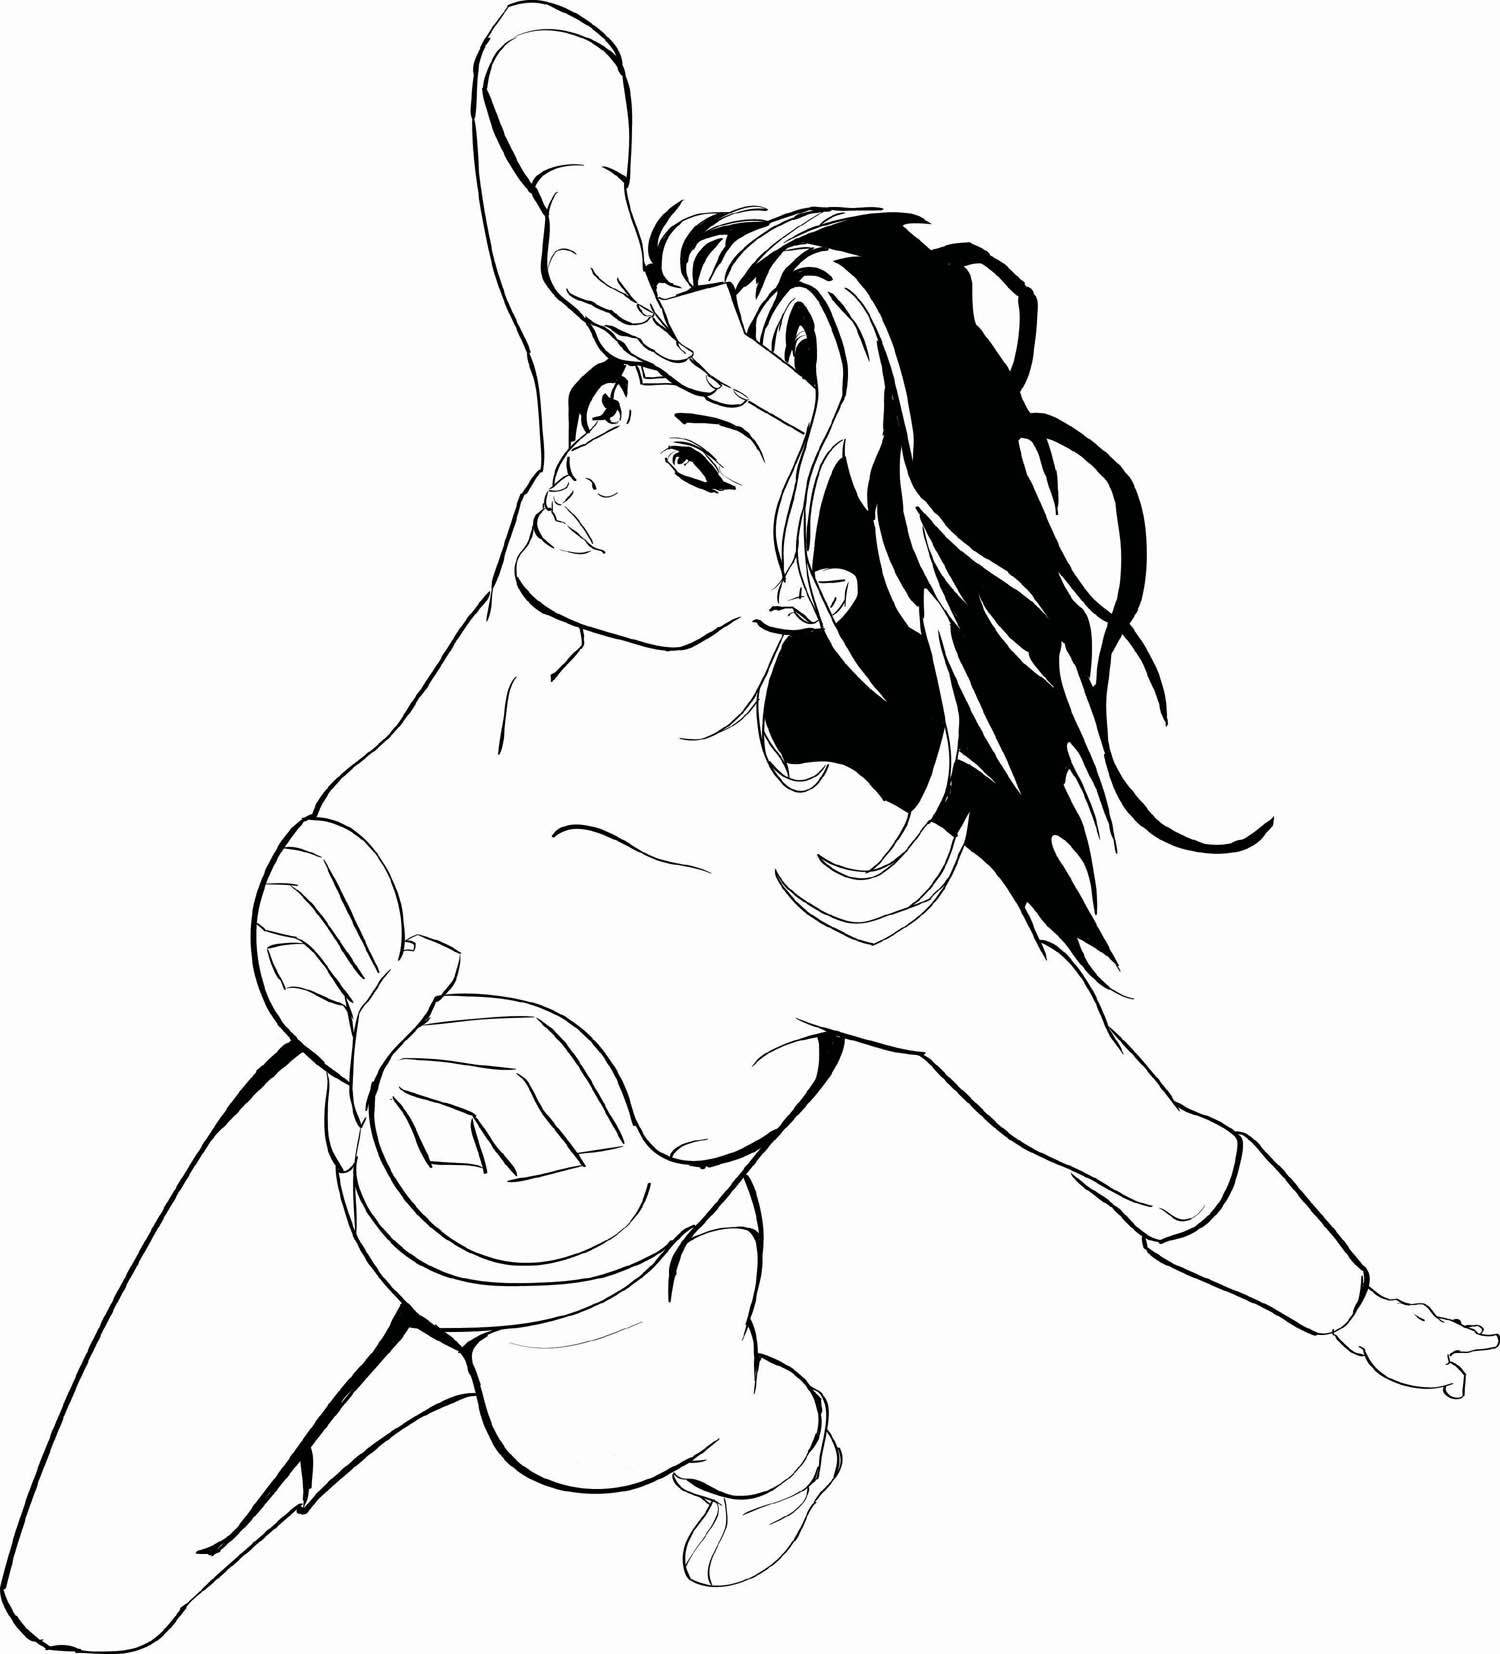 1500x1654 wonder woman wonder woman superhero coloring, superhero